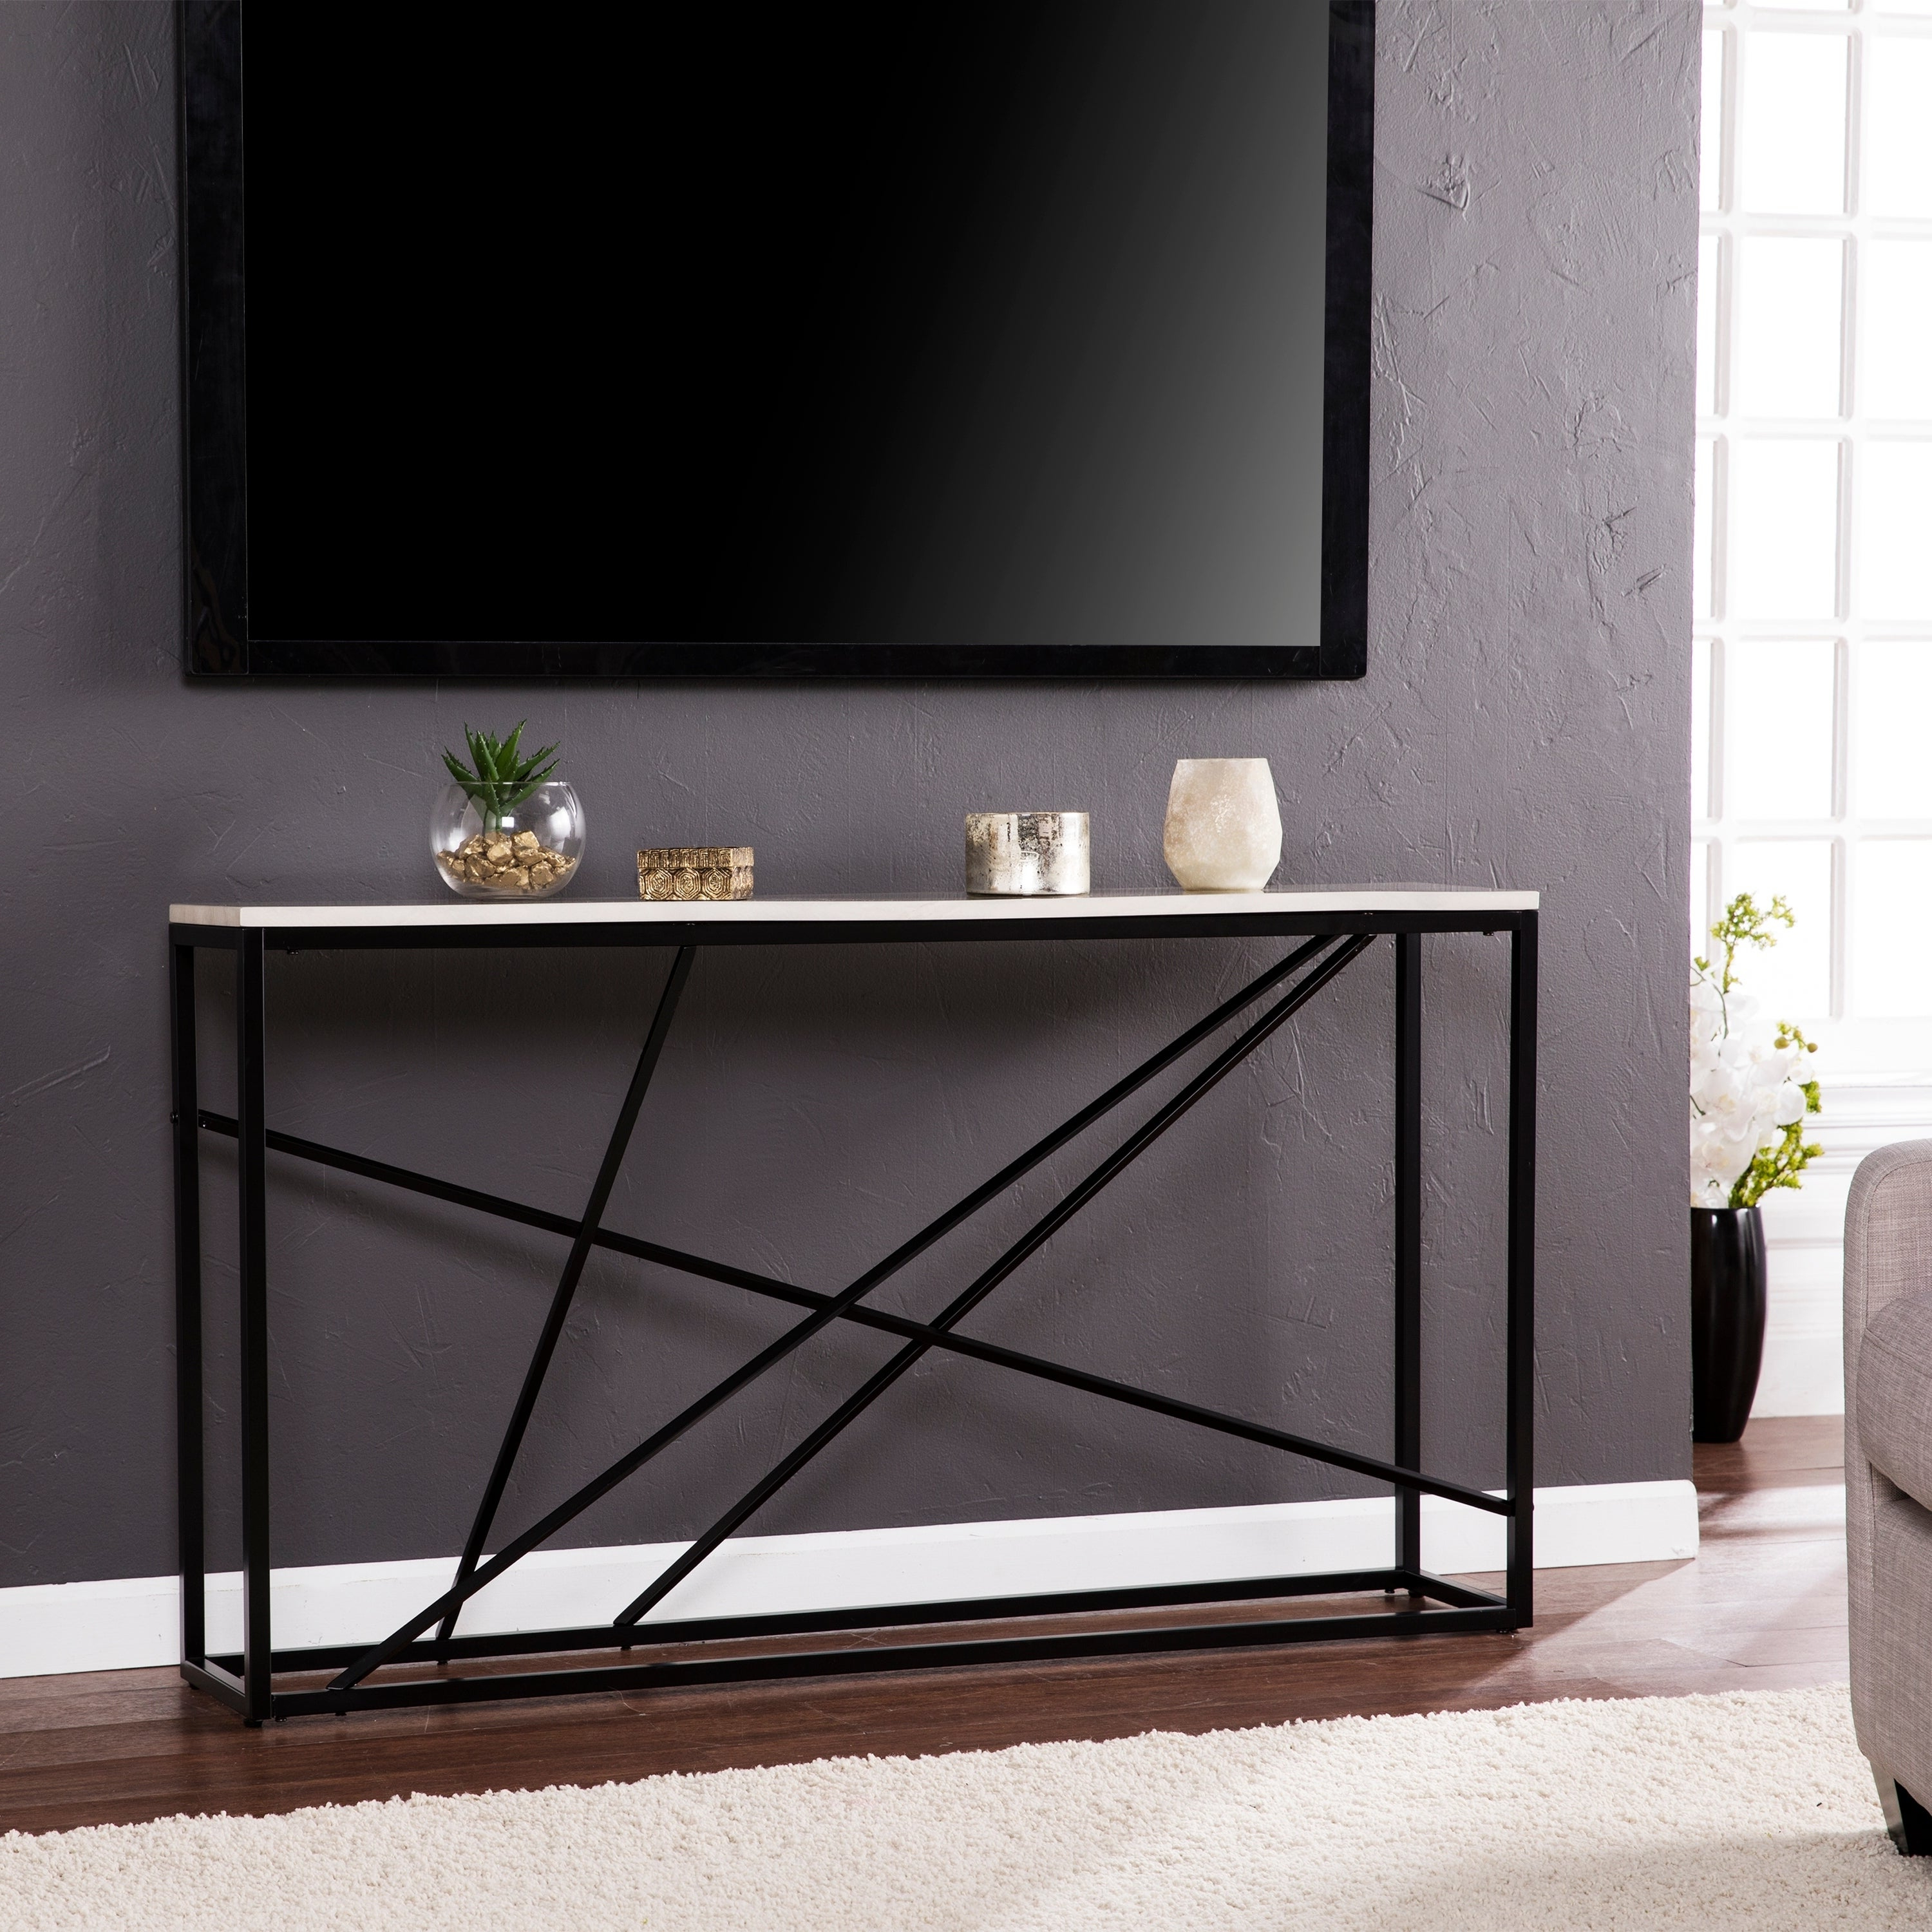 Shop Harper Blvd Kerley Faux Marble Skinny Console Table – Matte Intended For Favorite Kerley 4 Piece Dining Sets (View 23 of 25)